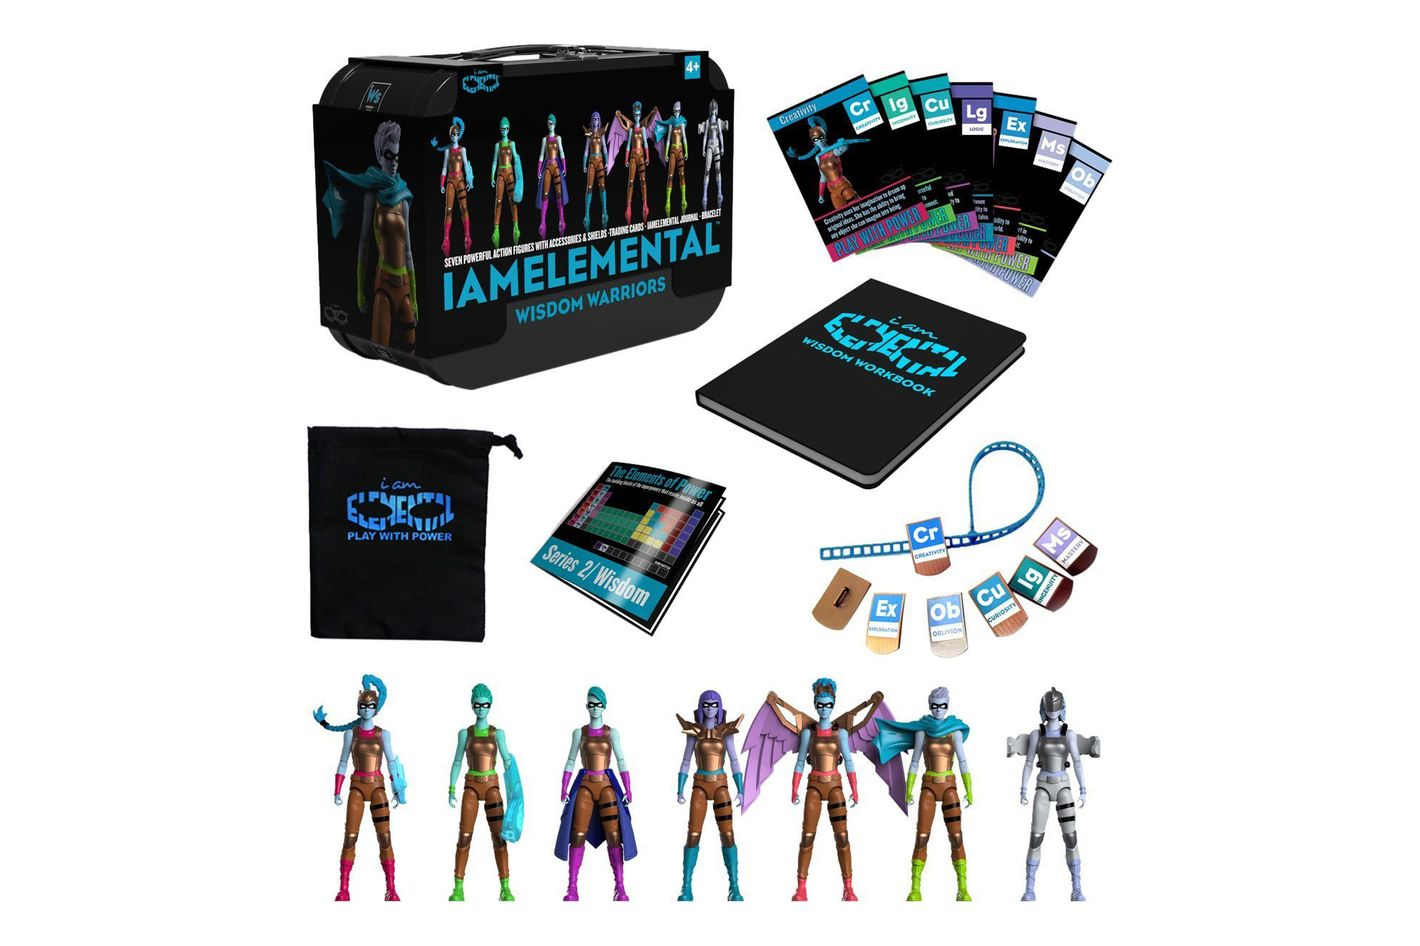 IAmElemental Series 2/Wisdom Complete Set of 7 Female Action Figures